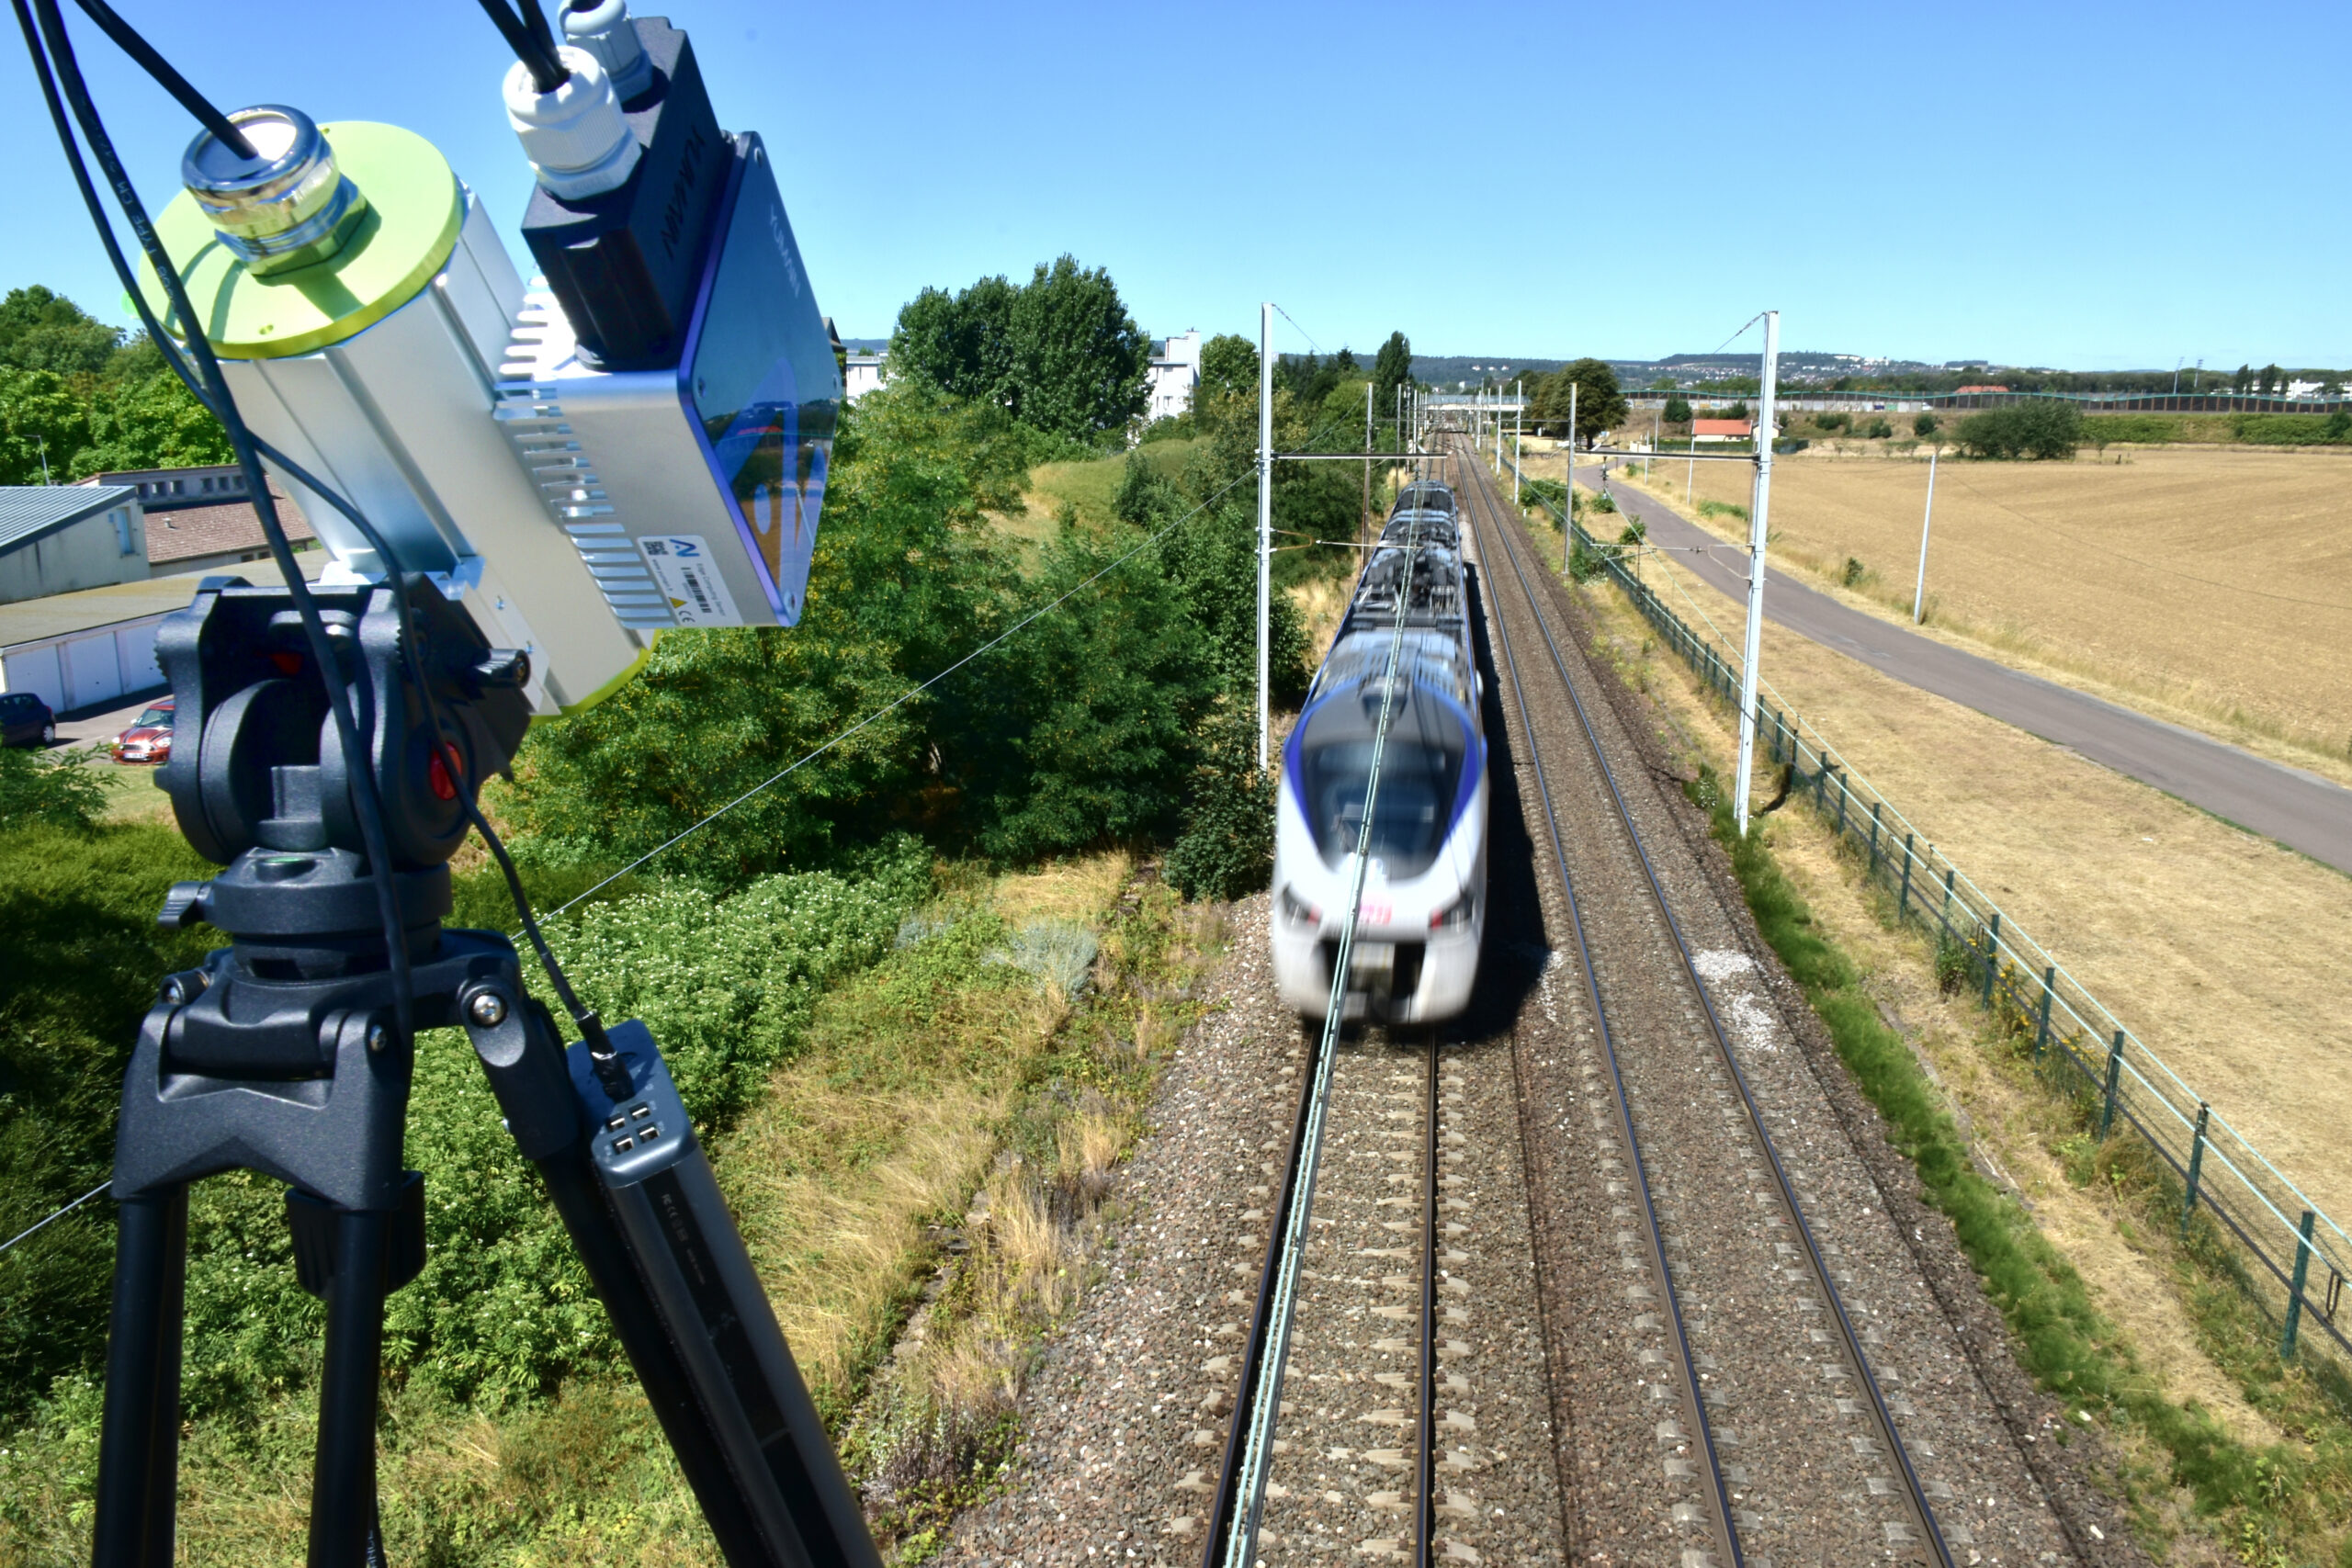 While the train is passing at up to 160 km/h, the Edge Computing Sensor detects and analyses the state of the train's pantographs in less than 5 minutes.